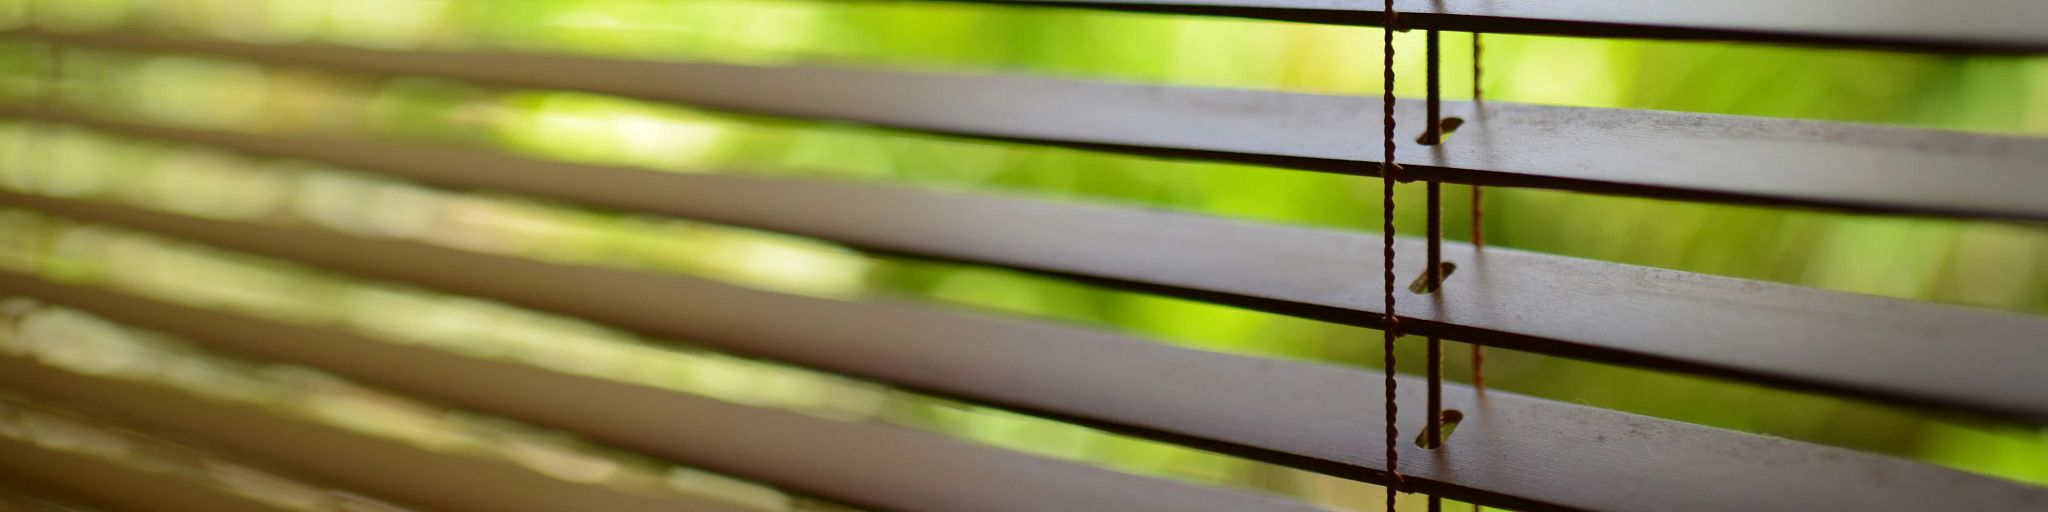 blinds with green background